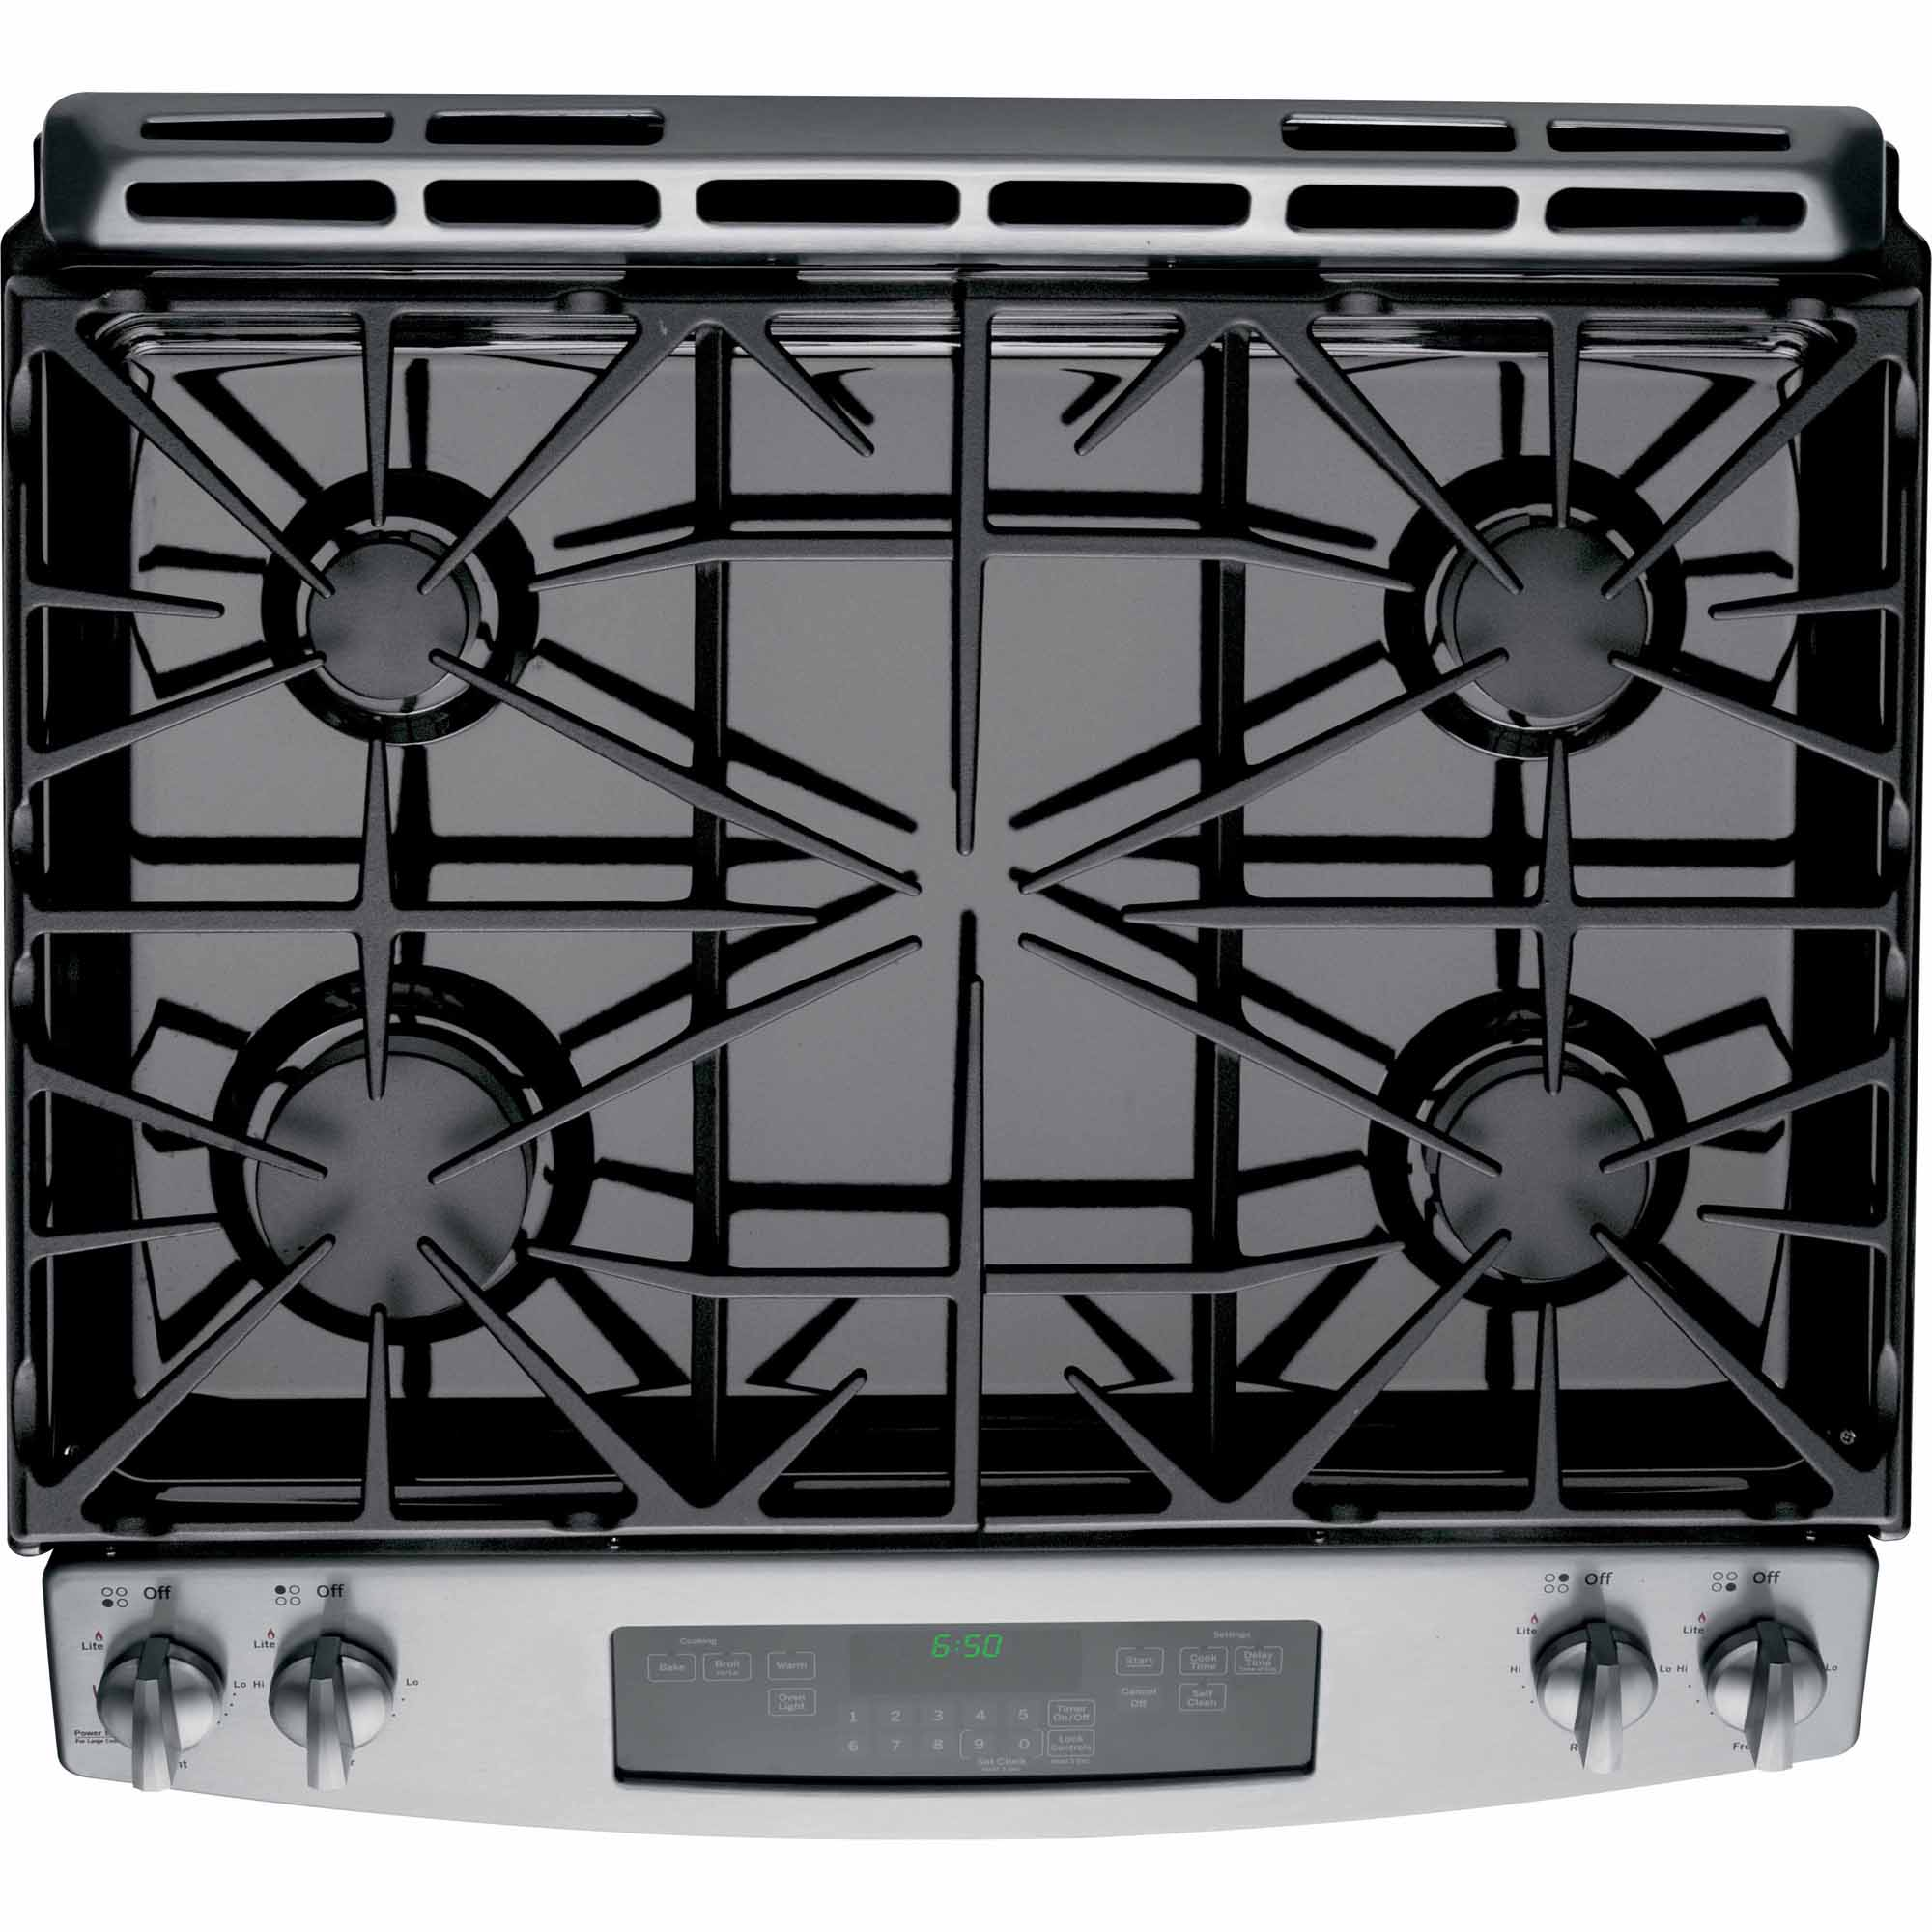 "GE Appliances JGS650SEFSS 30"" Slide-In Gas Range - Stainless Steel"